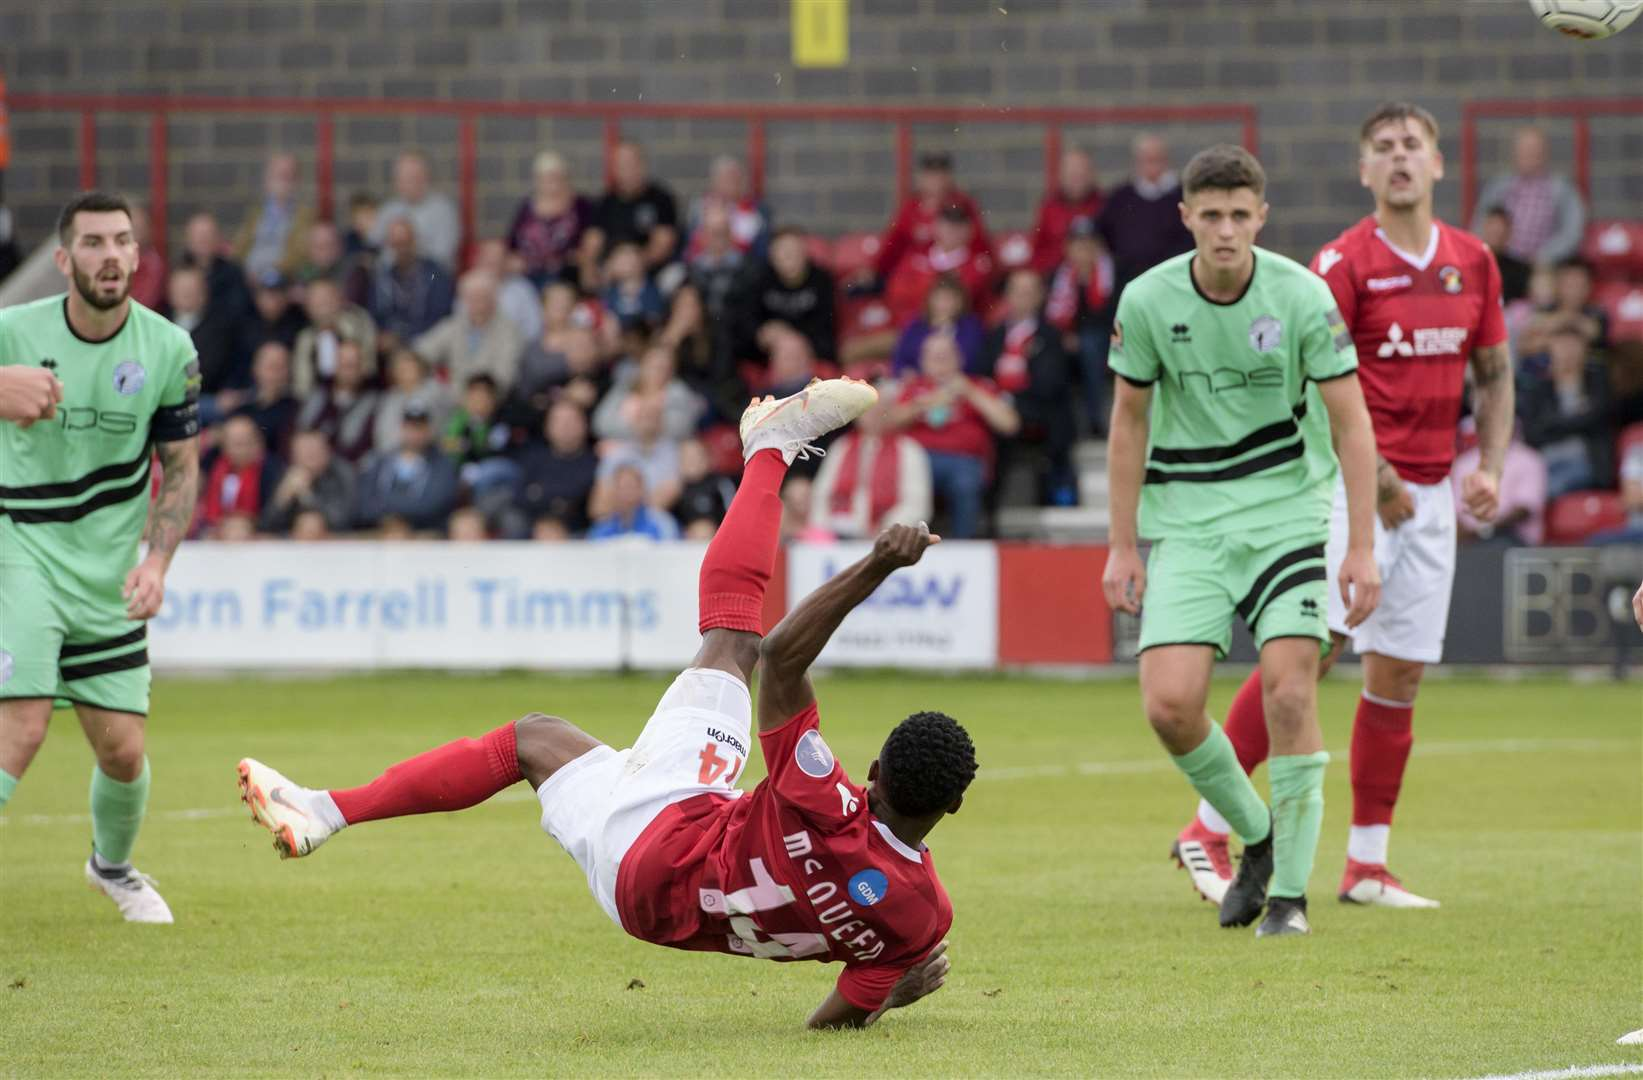 Darren McQueen goes for the spectacular against Gateshead Picture: Andy Payton